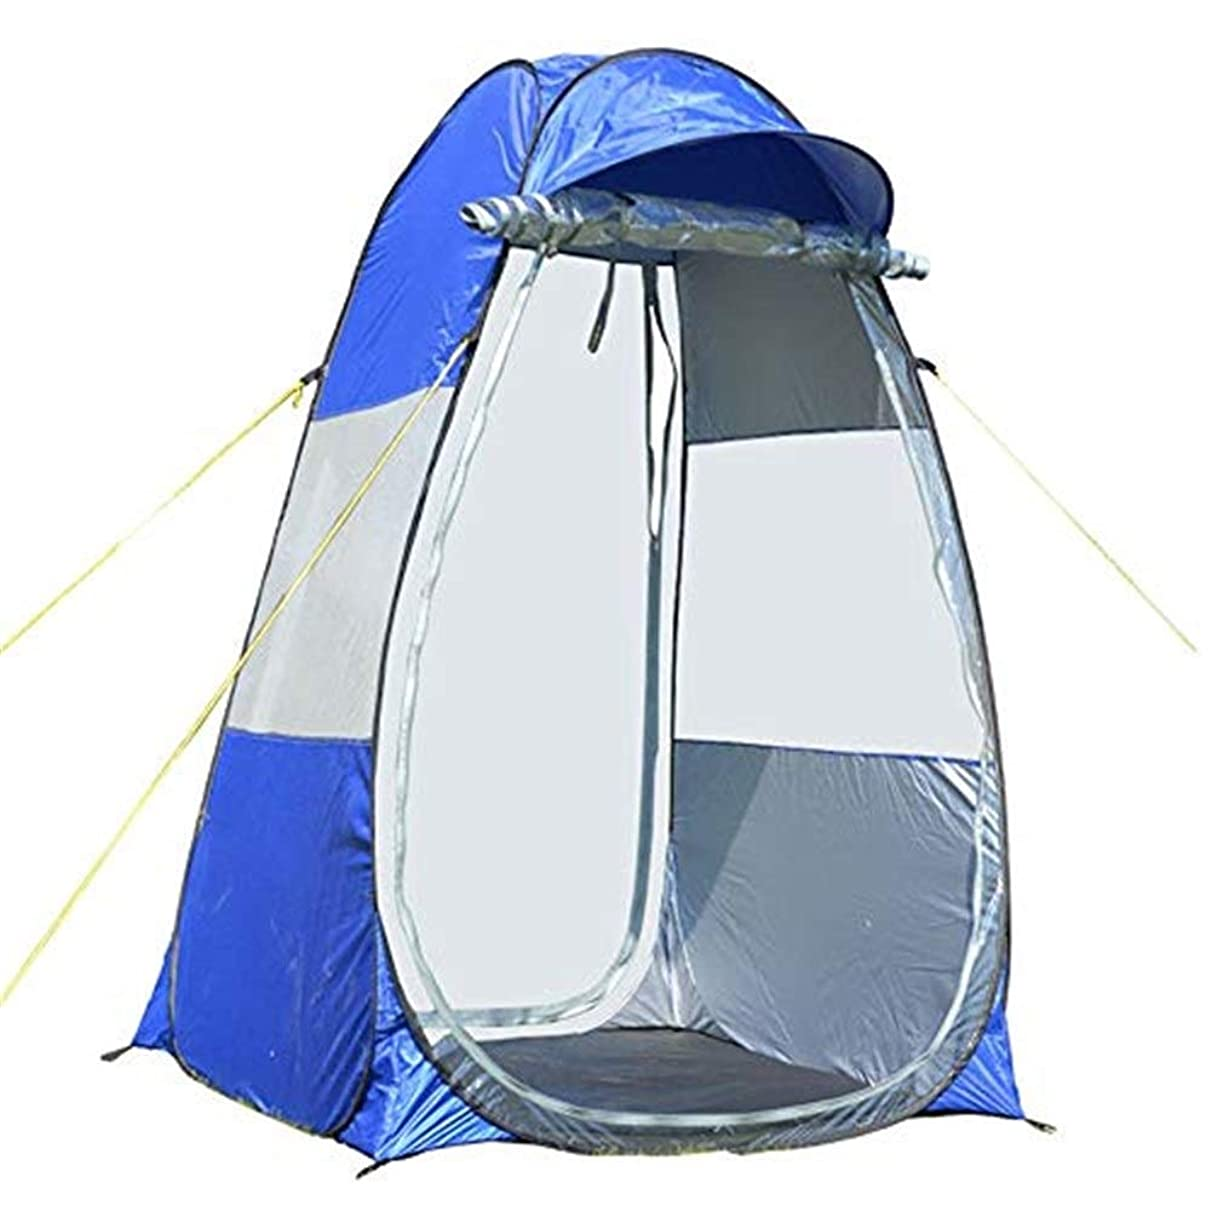 YYZP2SPOS Camp Tent Outdoor Camping Tent, Multi-Window Frozen Fishing Night Fishing Warm Winter Fishing Gear Tent with Duck Tongue, Suitable for 1~2 People, 48